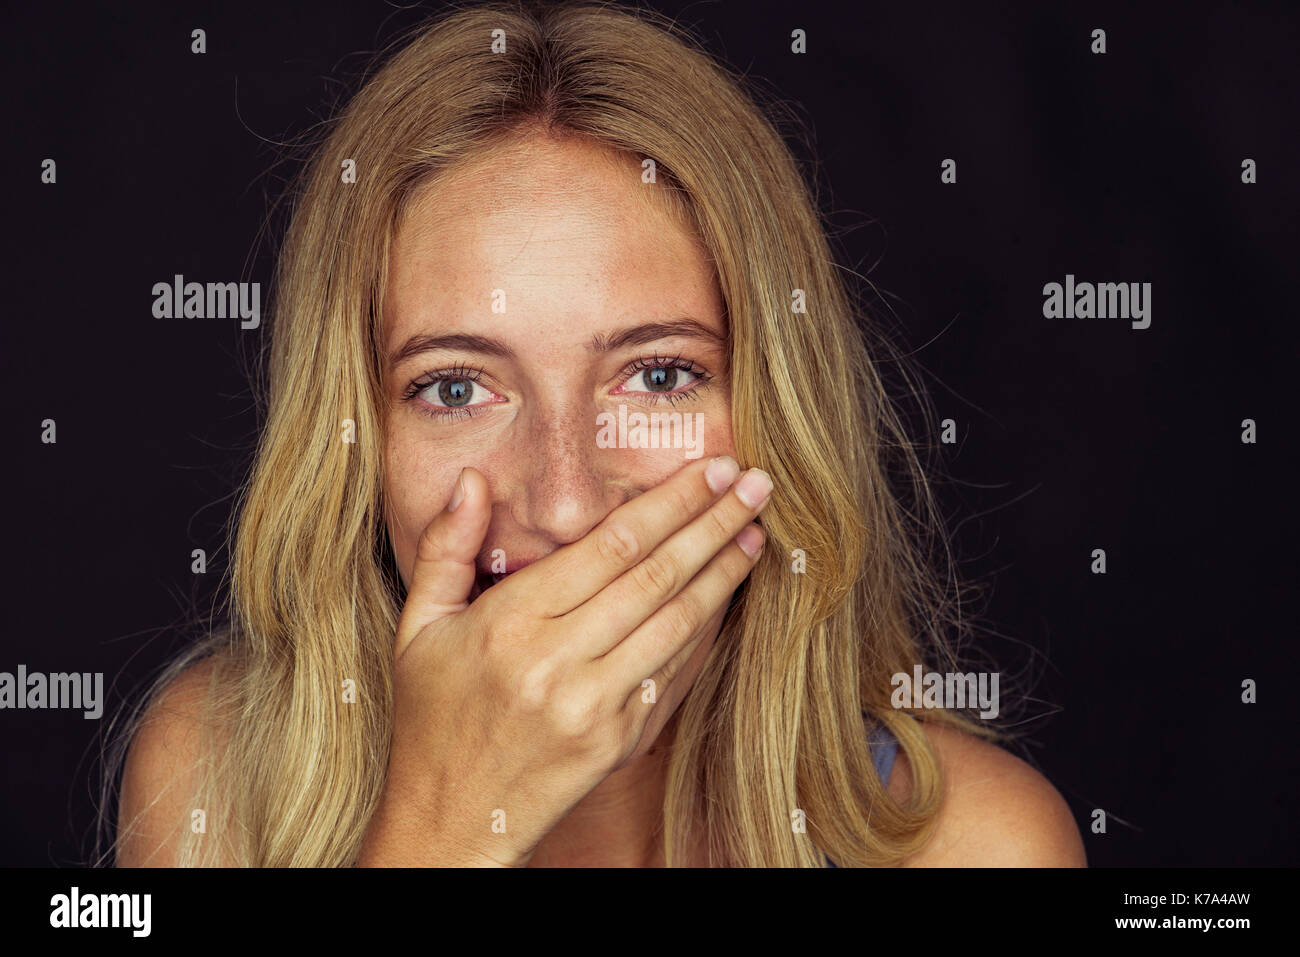 Young woman laughing with hand over mouth - Stock Image